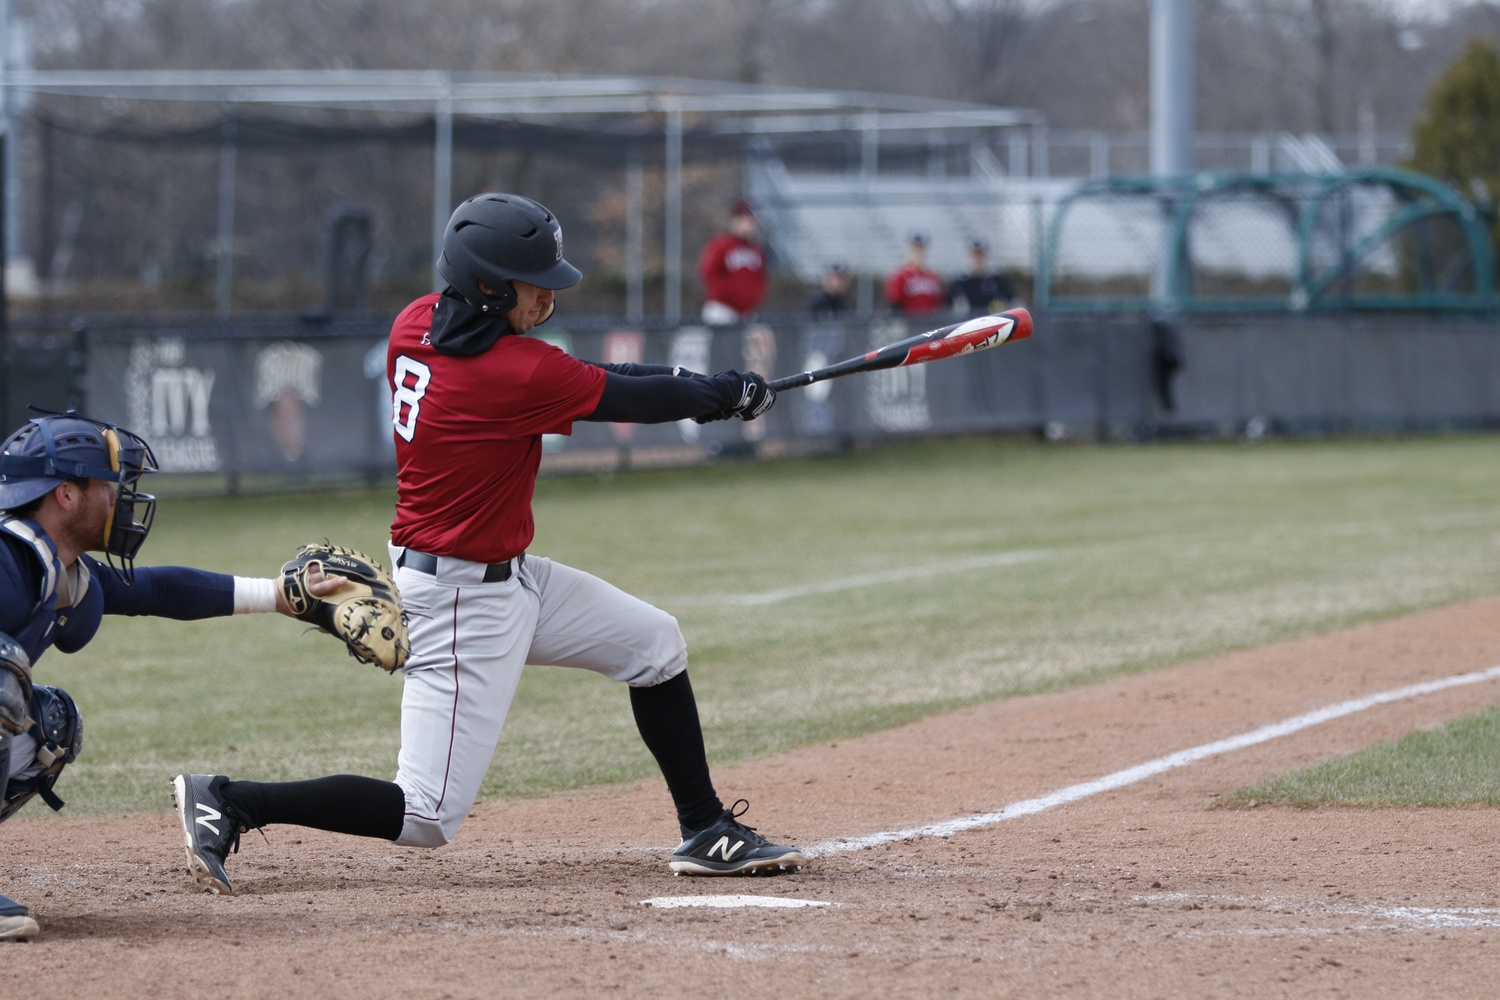 The Crimson's 18-run outing was the highest offensive output of the season that included five home runs, two of which came from senior Matt Rothenberg.